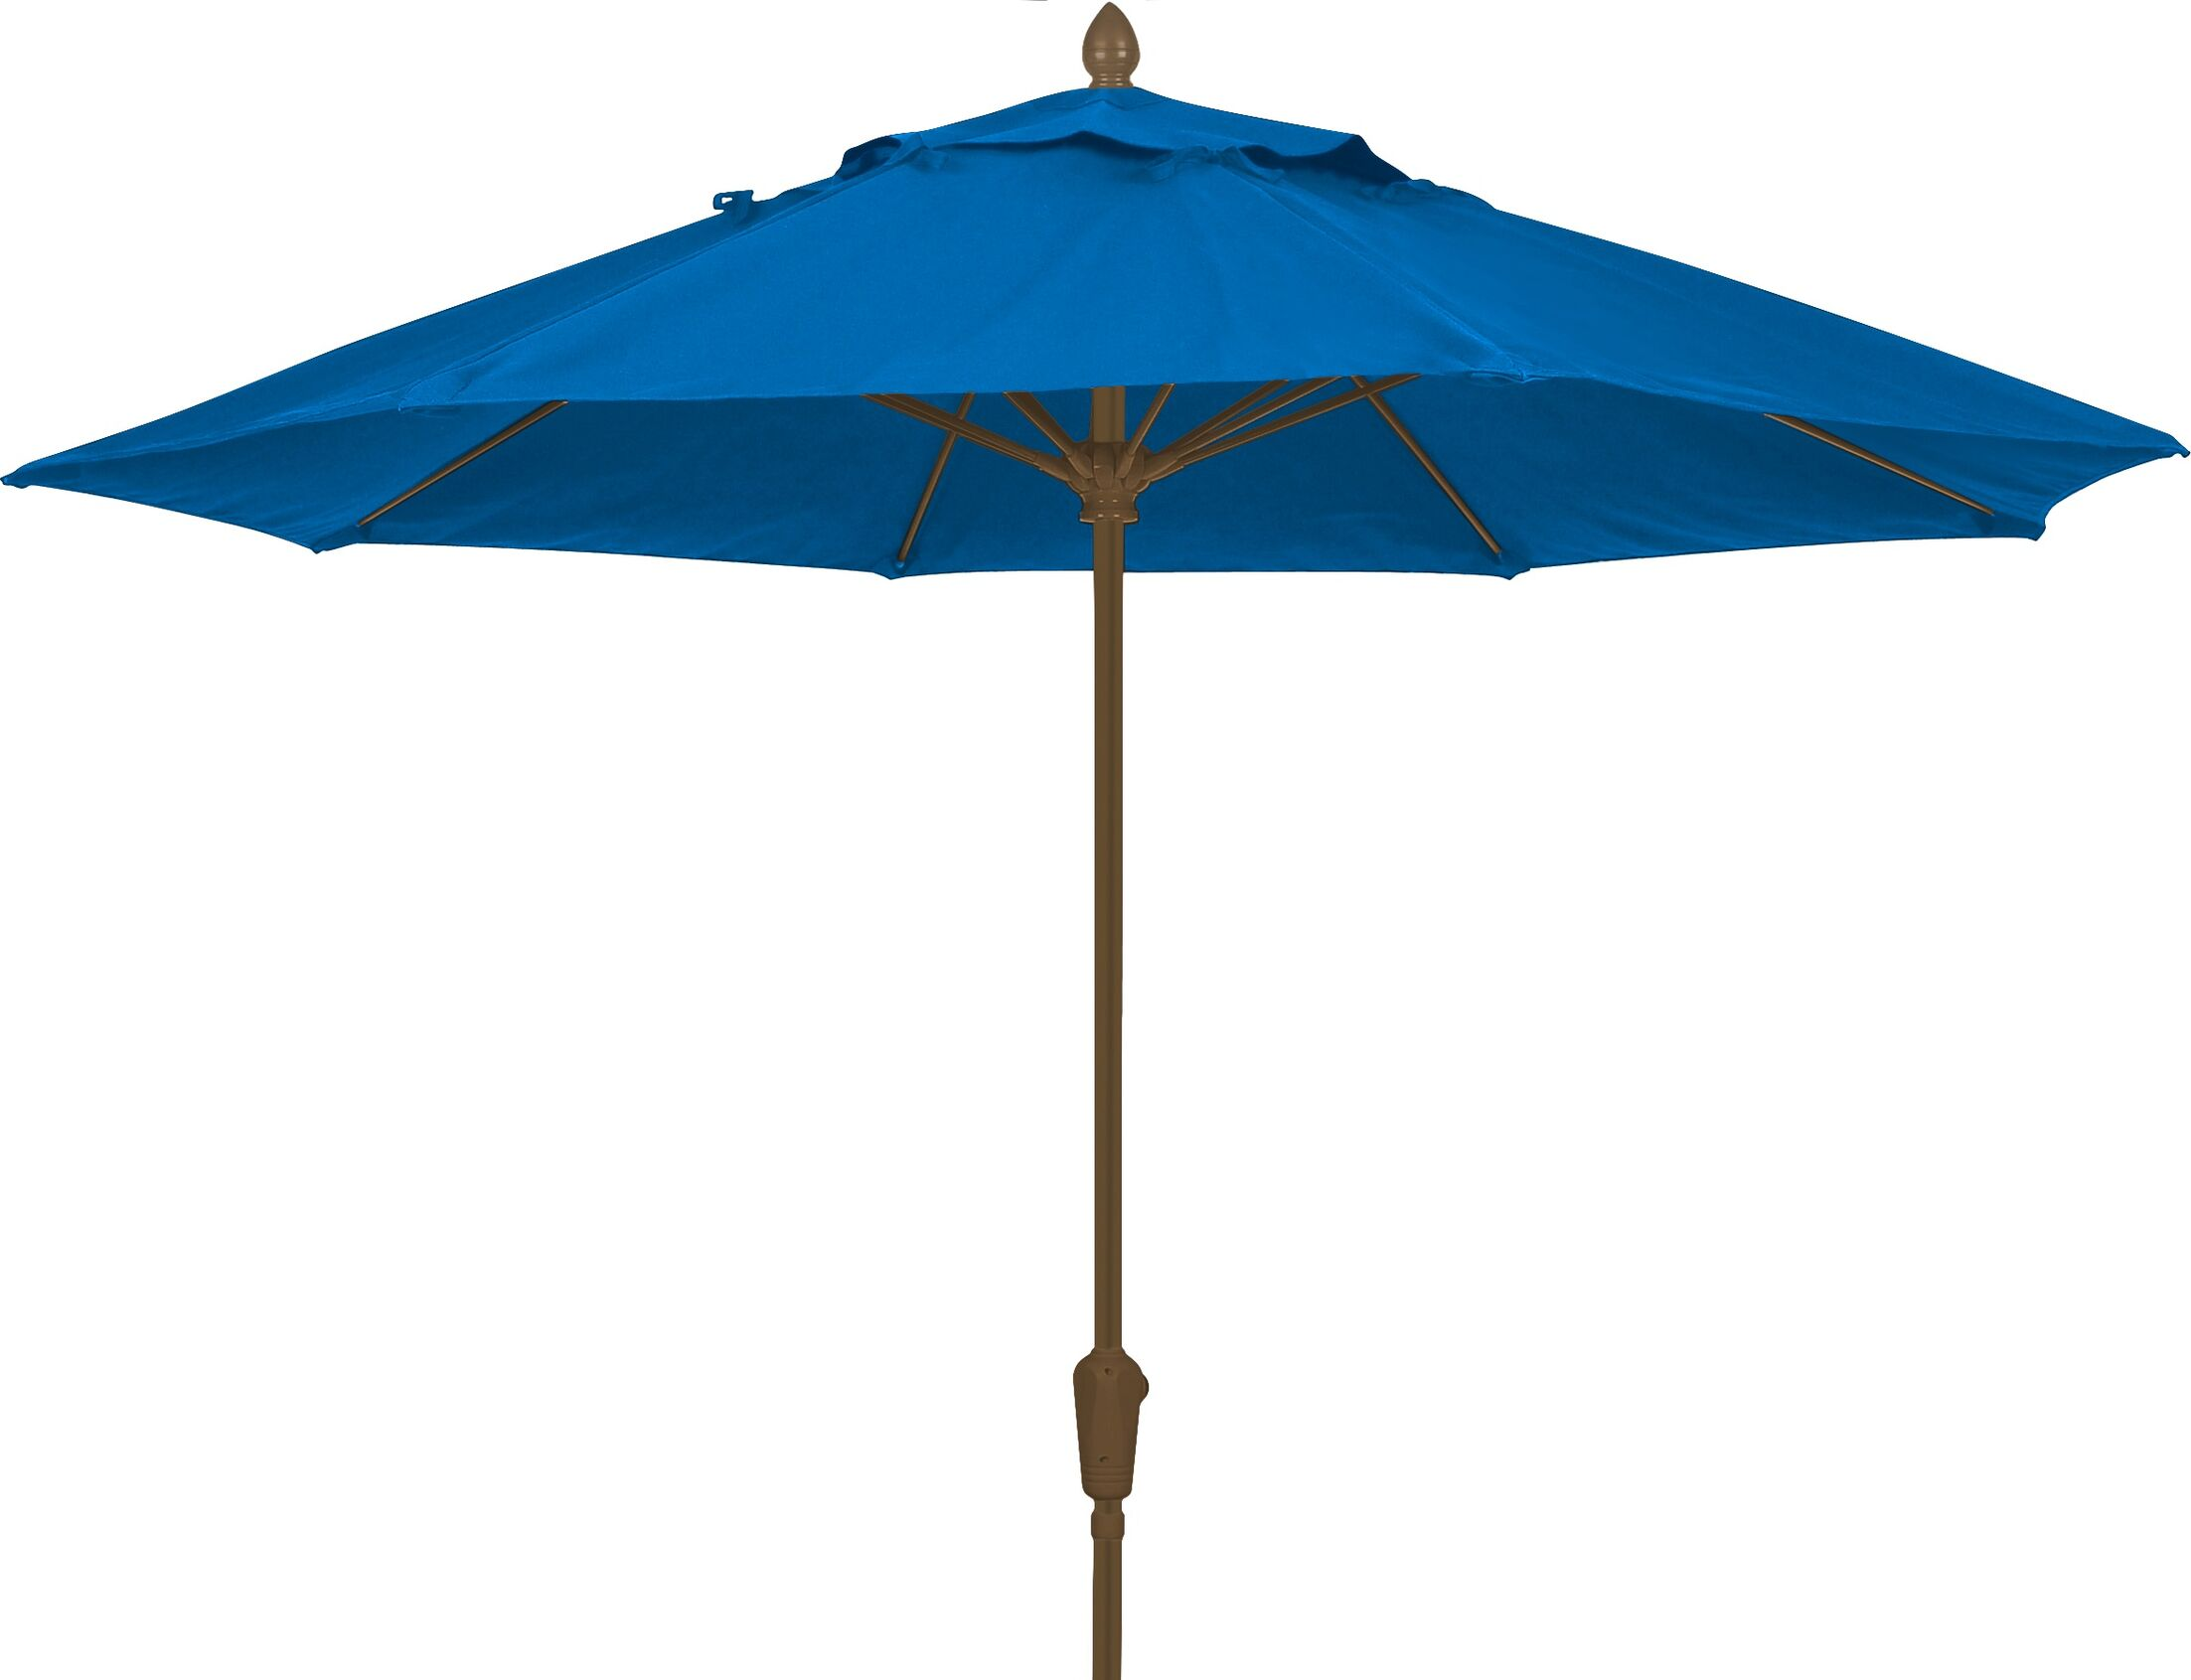 Prestige 7.5' Market Umbrella Fabric: Pacific Blue, Frame Finish: Champagne Bronze